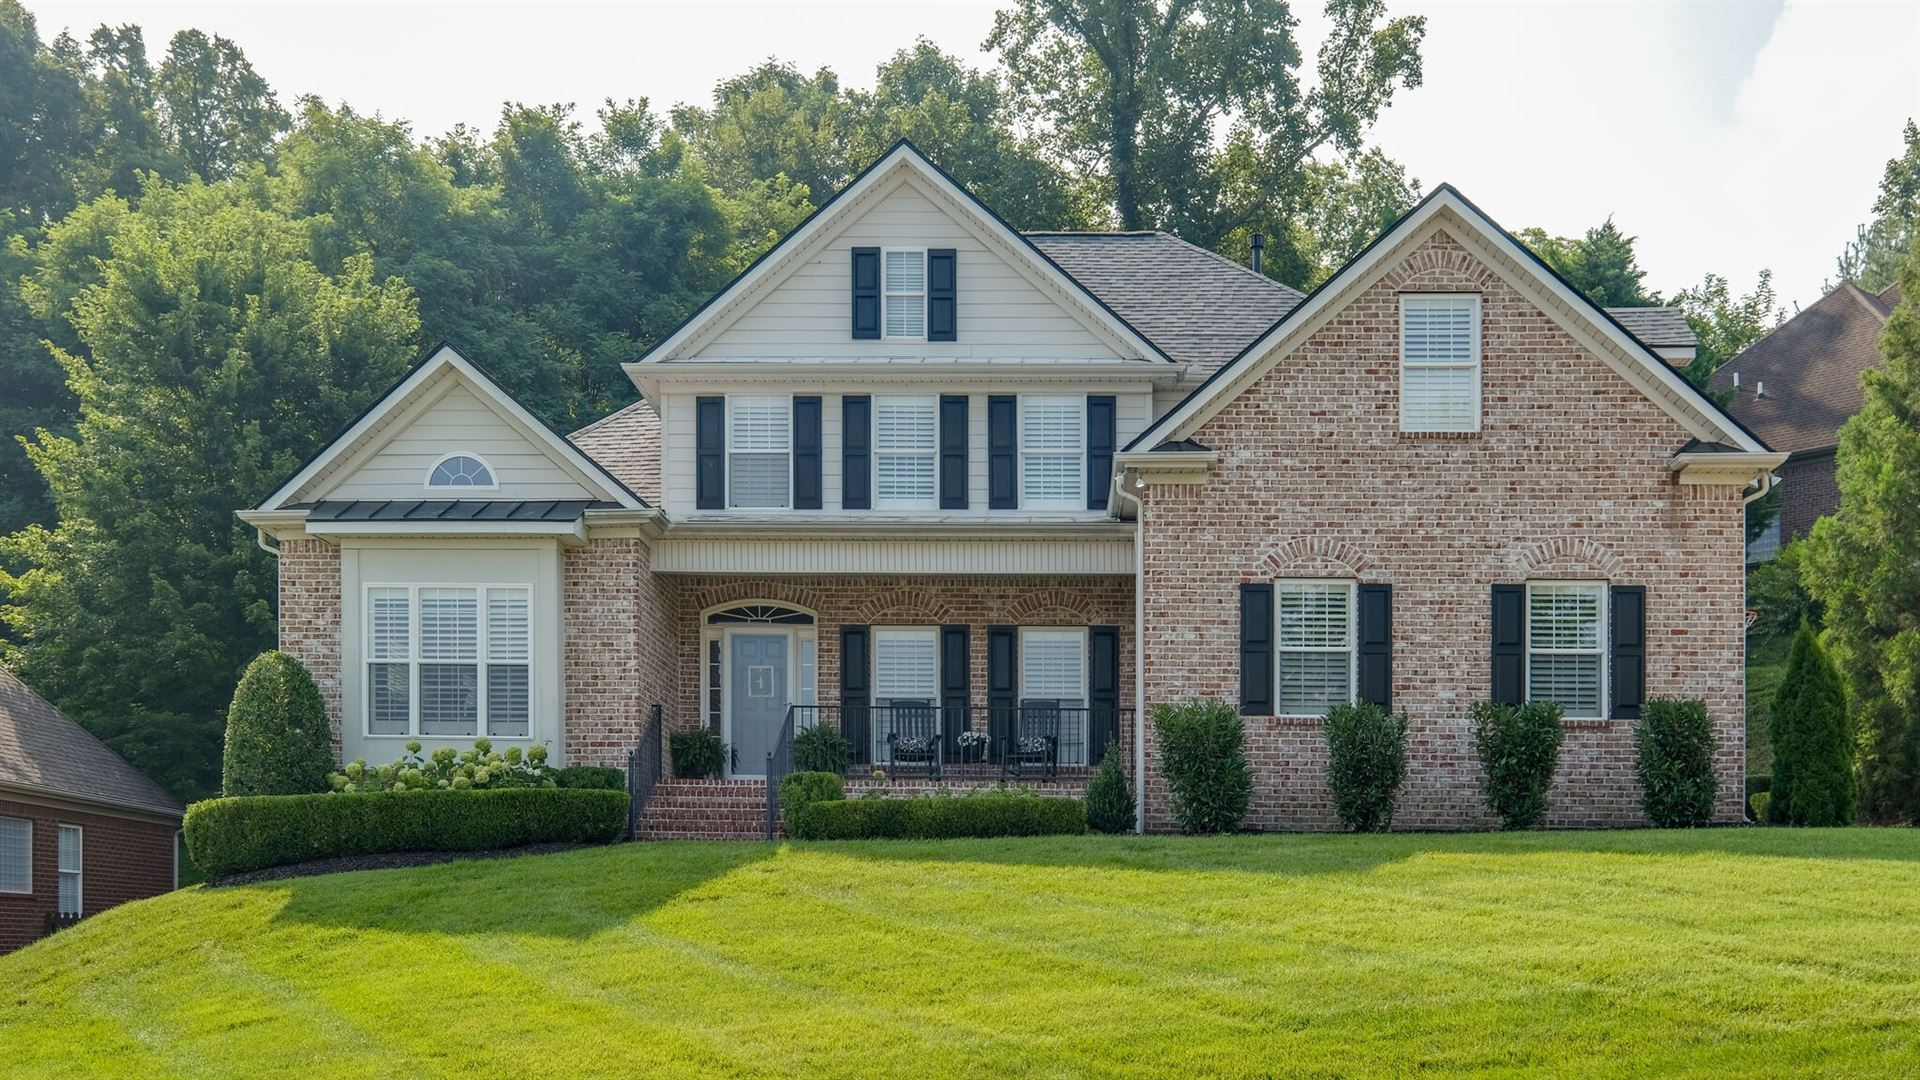 Photo of 1494 Red Oak Dr, Brentwood, TN 37027 (MLS # 2276698)